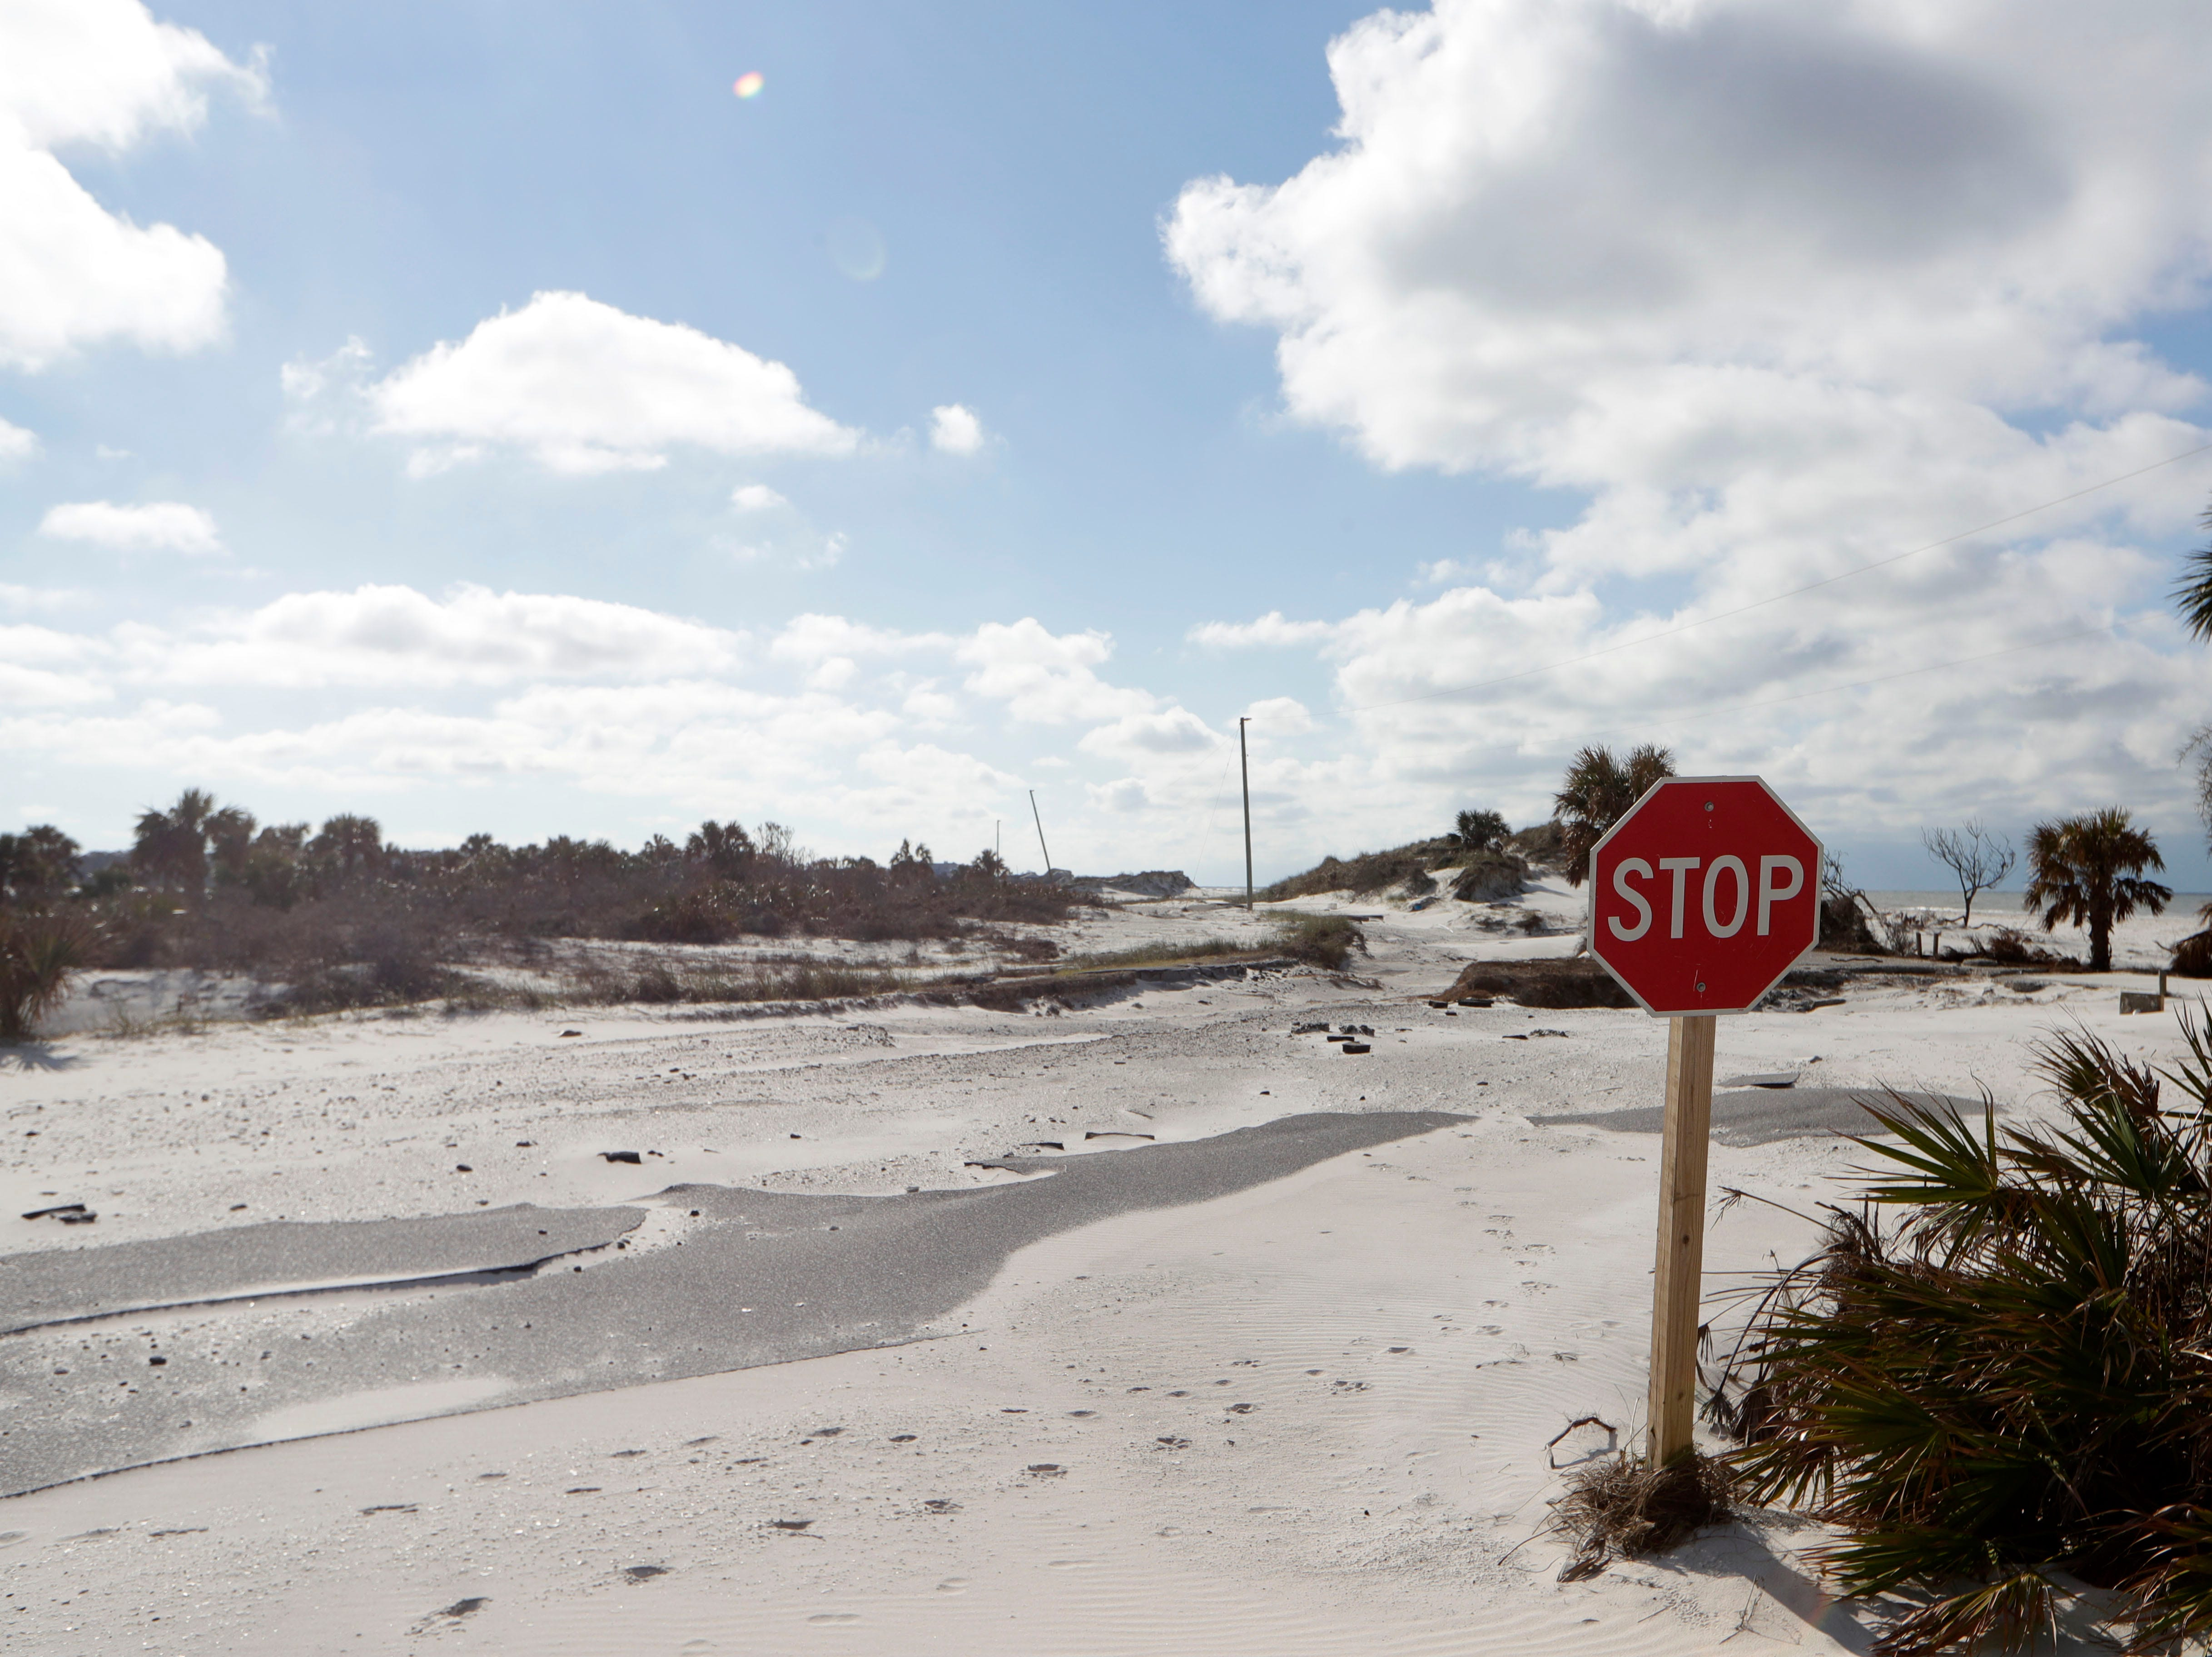 A stop sign still stands in St. Joseph Peninsula State Park, Monday, Jan. 14, 2019, but the road has been washed away by Hurricane Michael. Michael hit the panhandle Oct. 10, 2018.